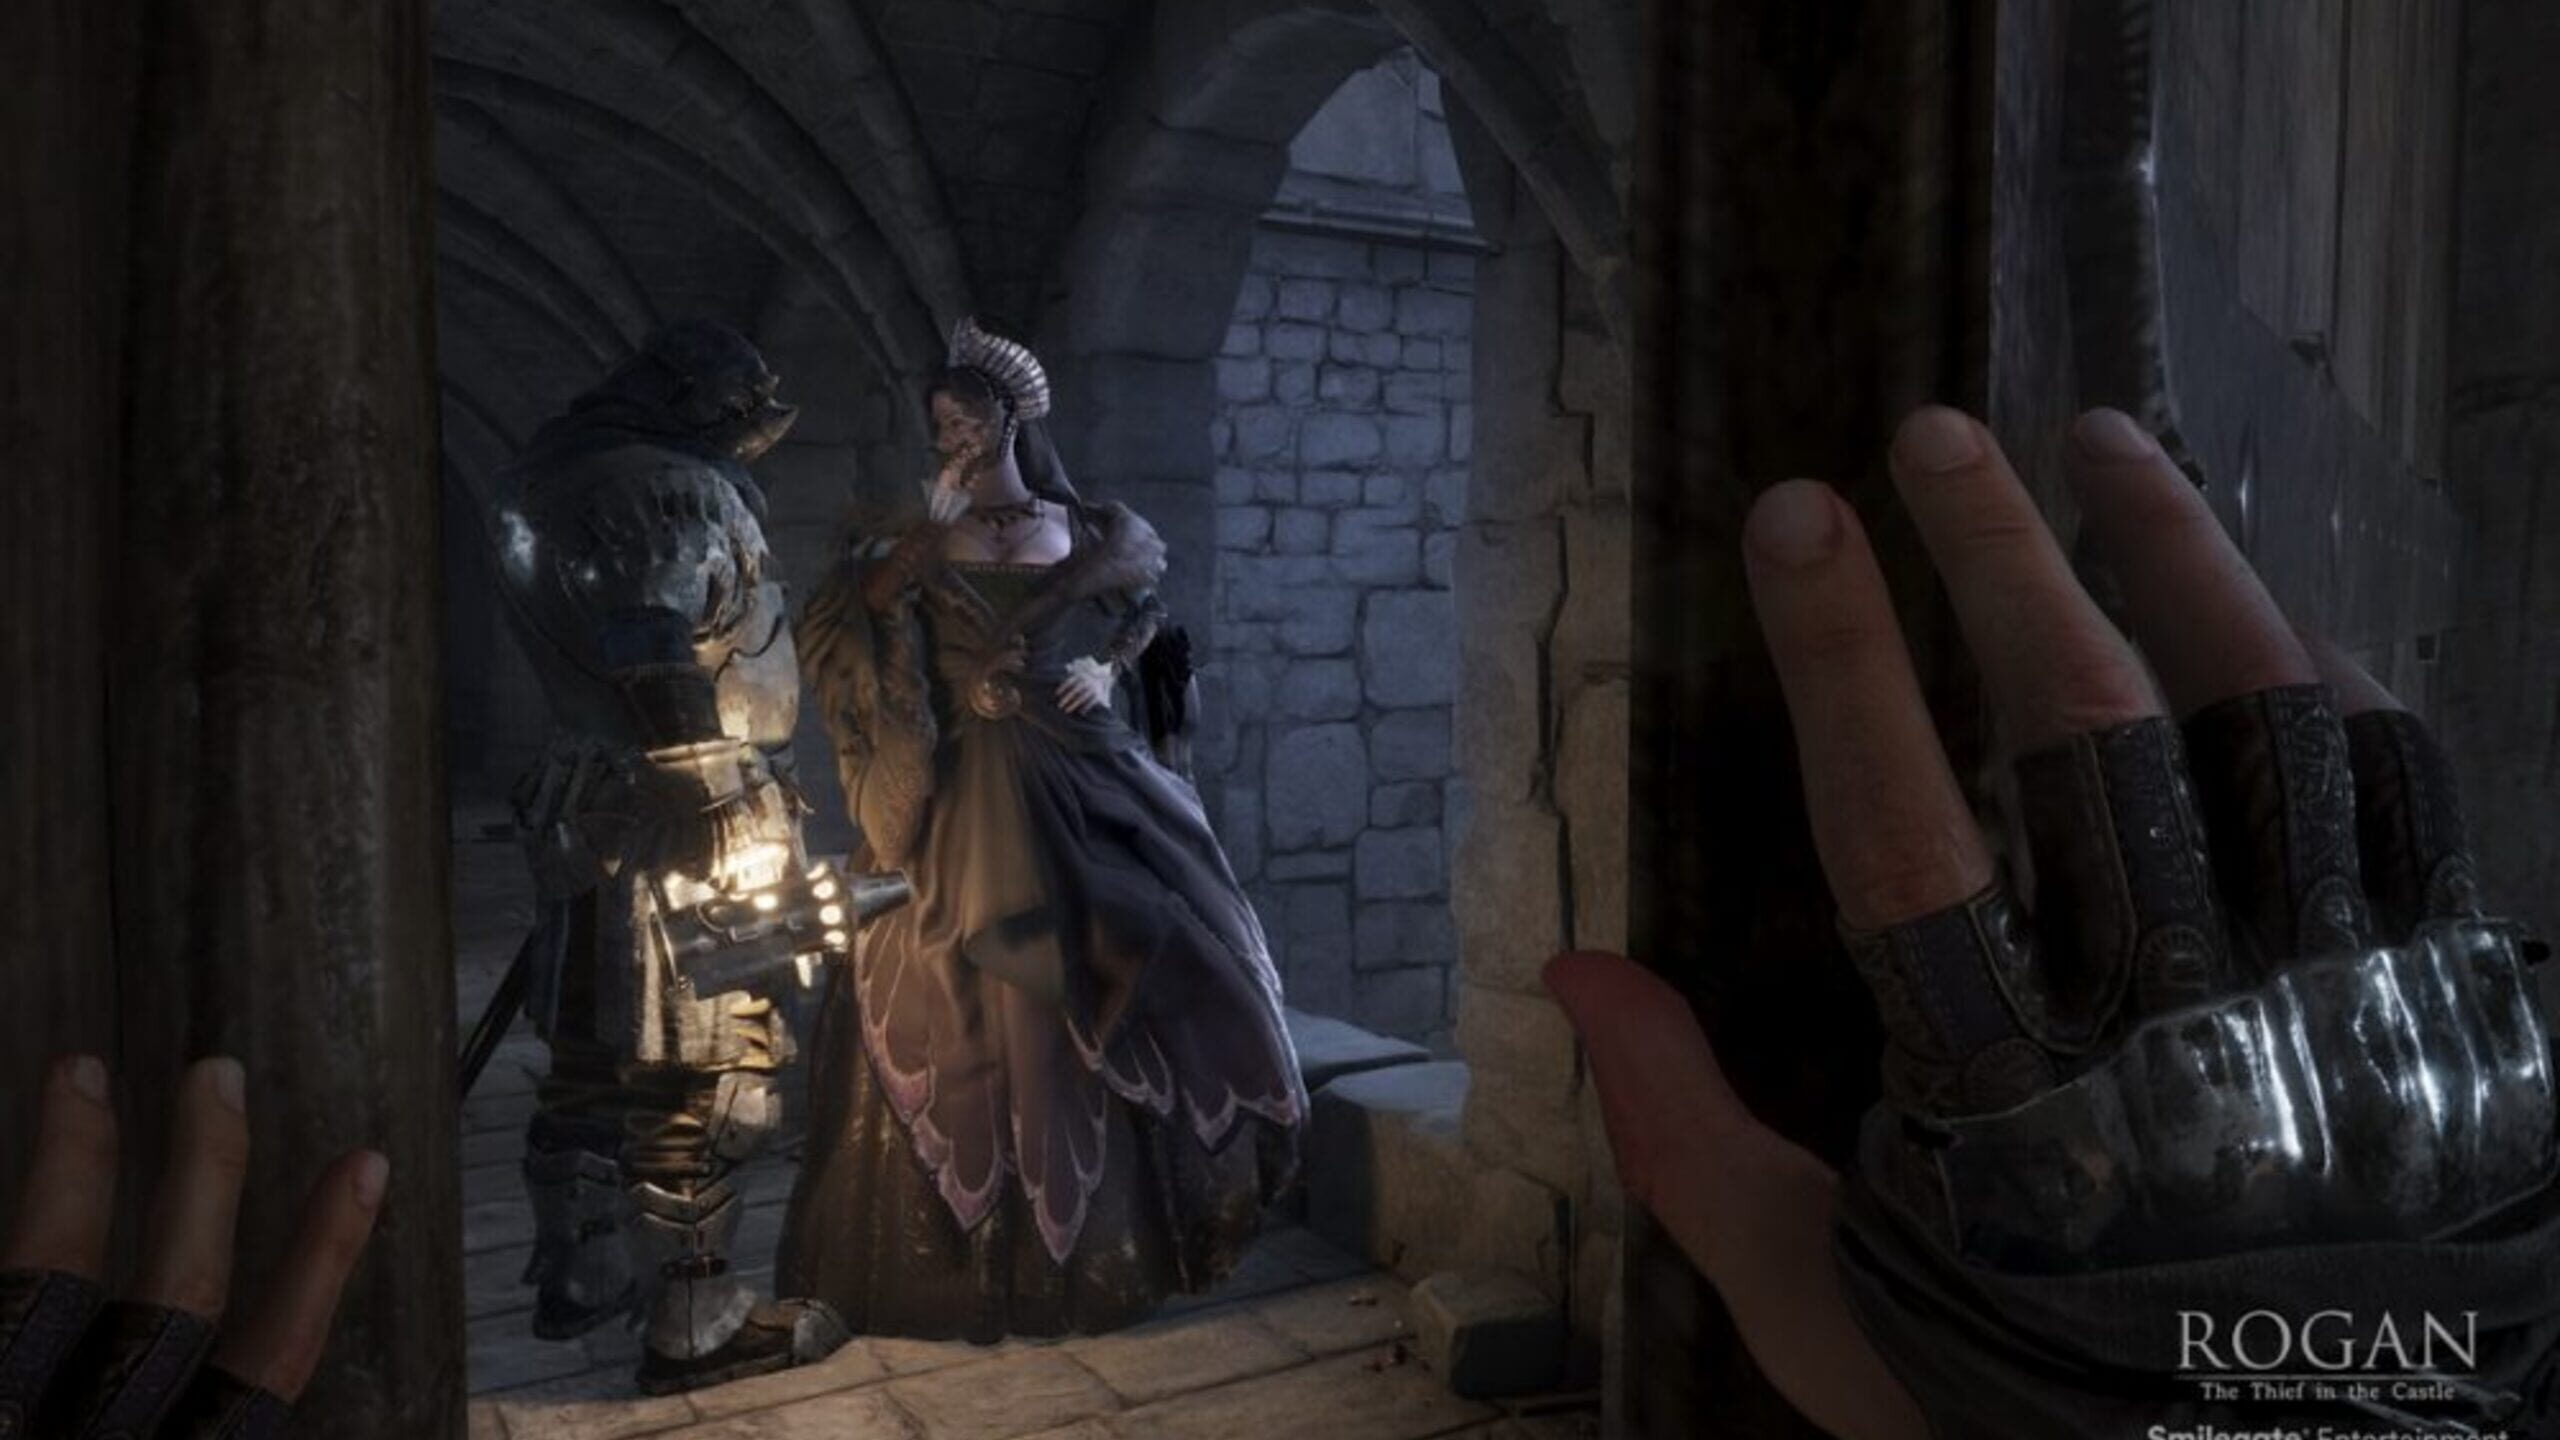 game cover art for Rogan: The Thief in the Castle